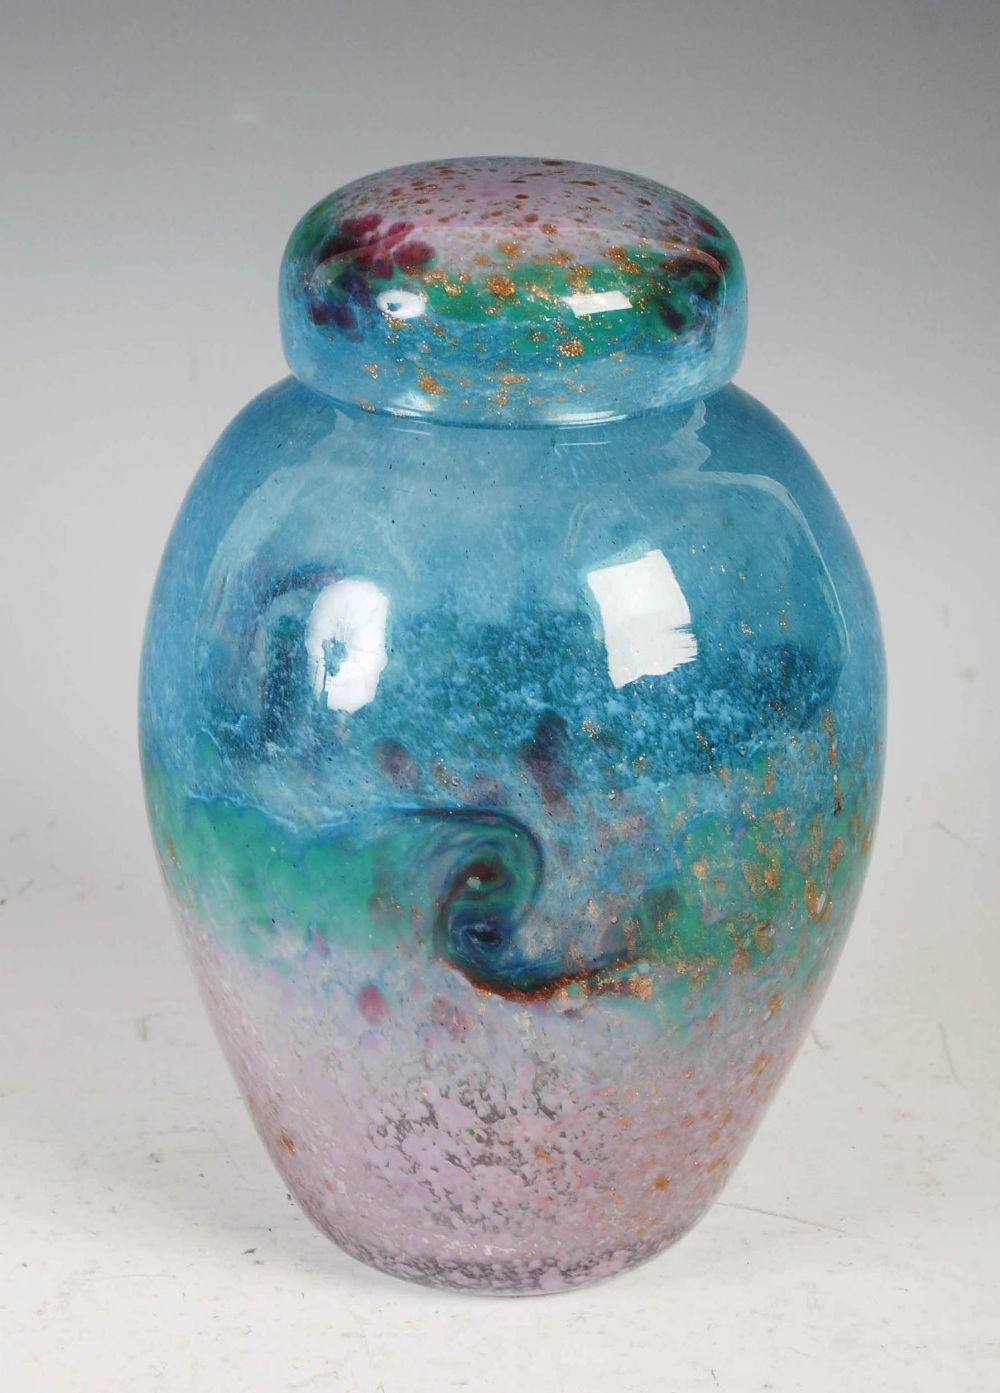 A rare Monart jar and cover, shape VJ, mottled blue, green and pink to purple glass with gold